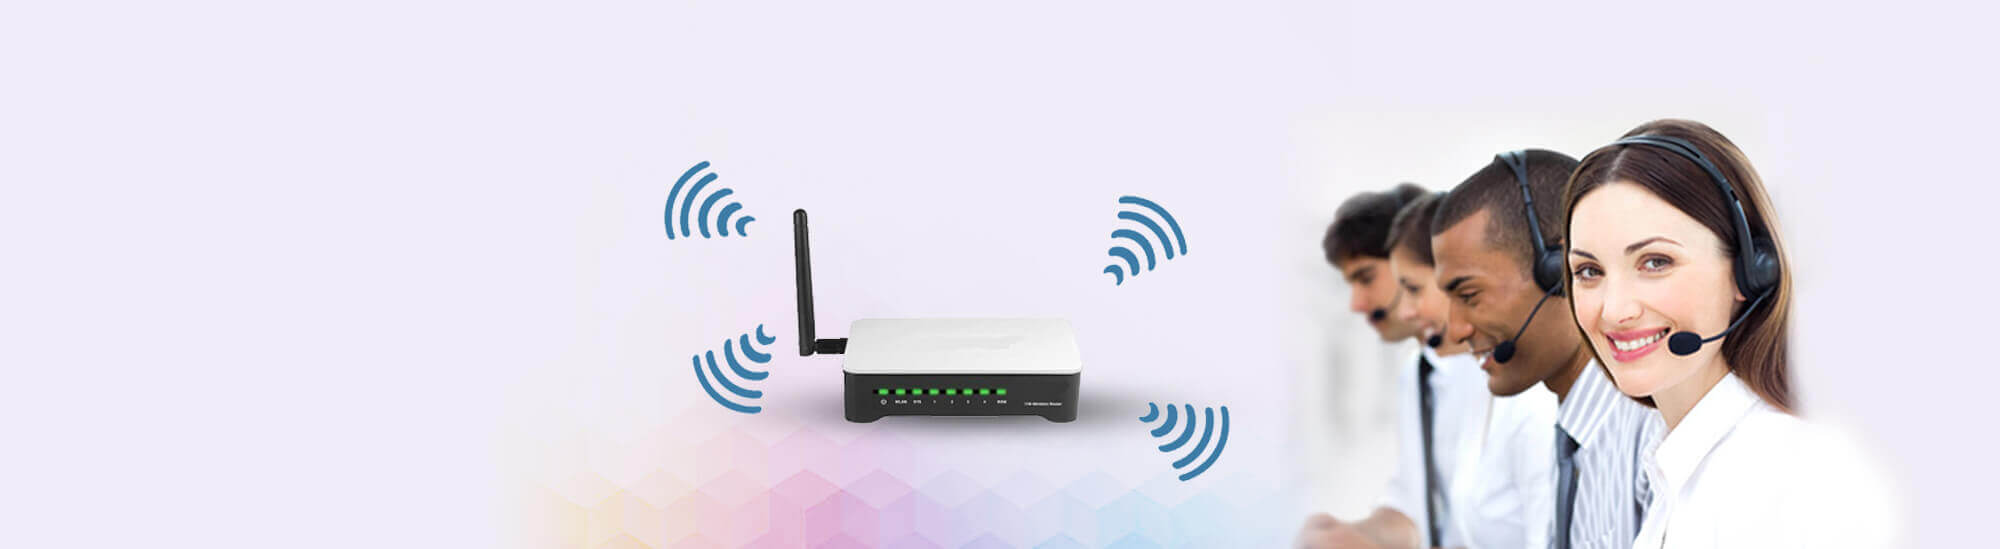 Router Customer Support